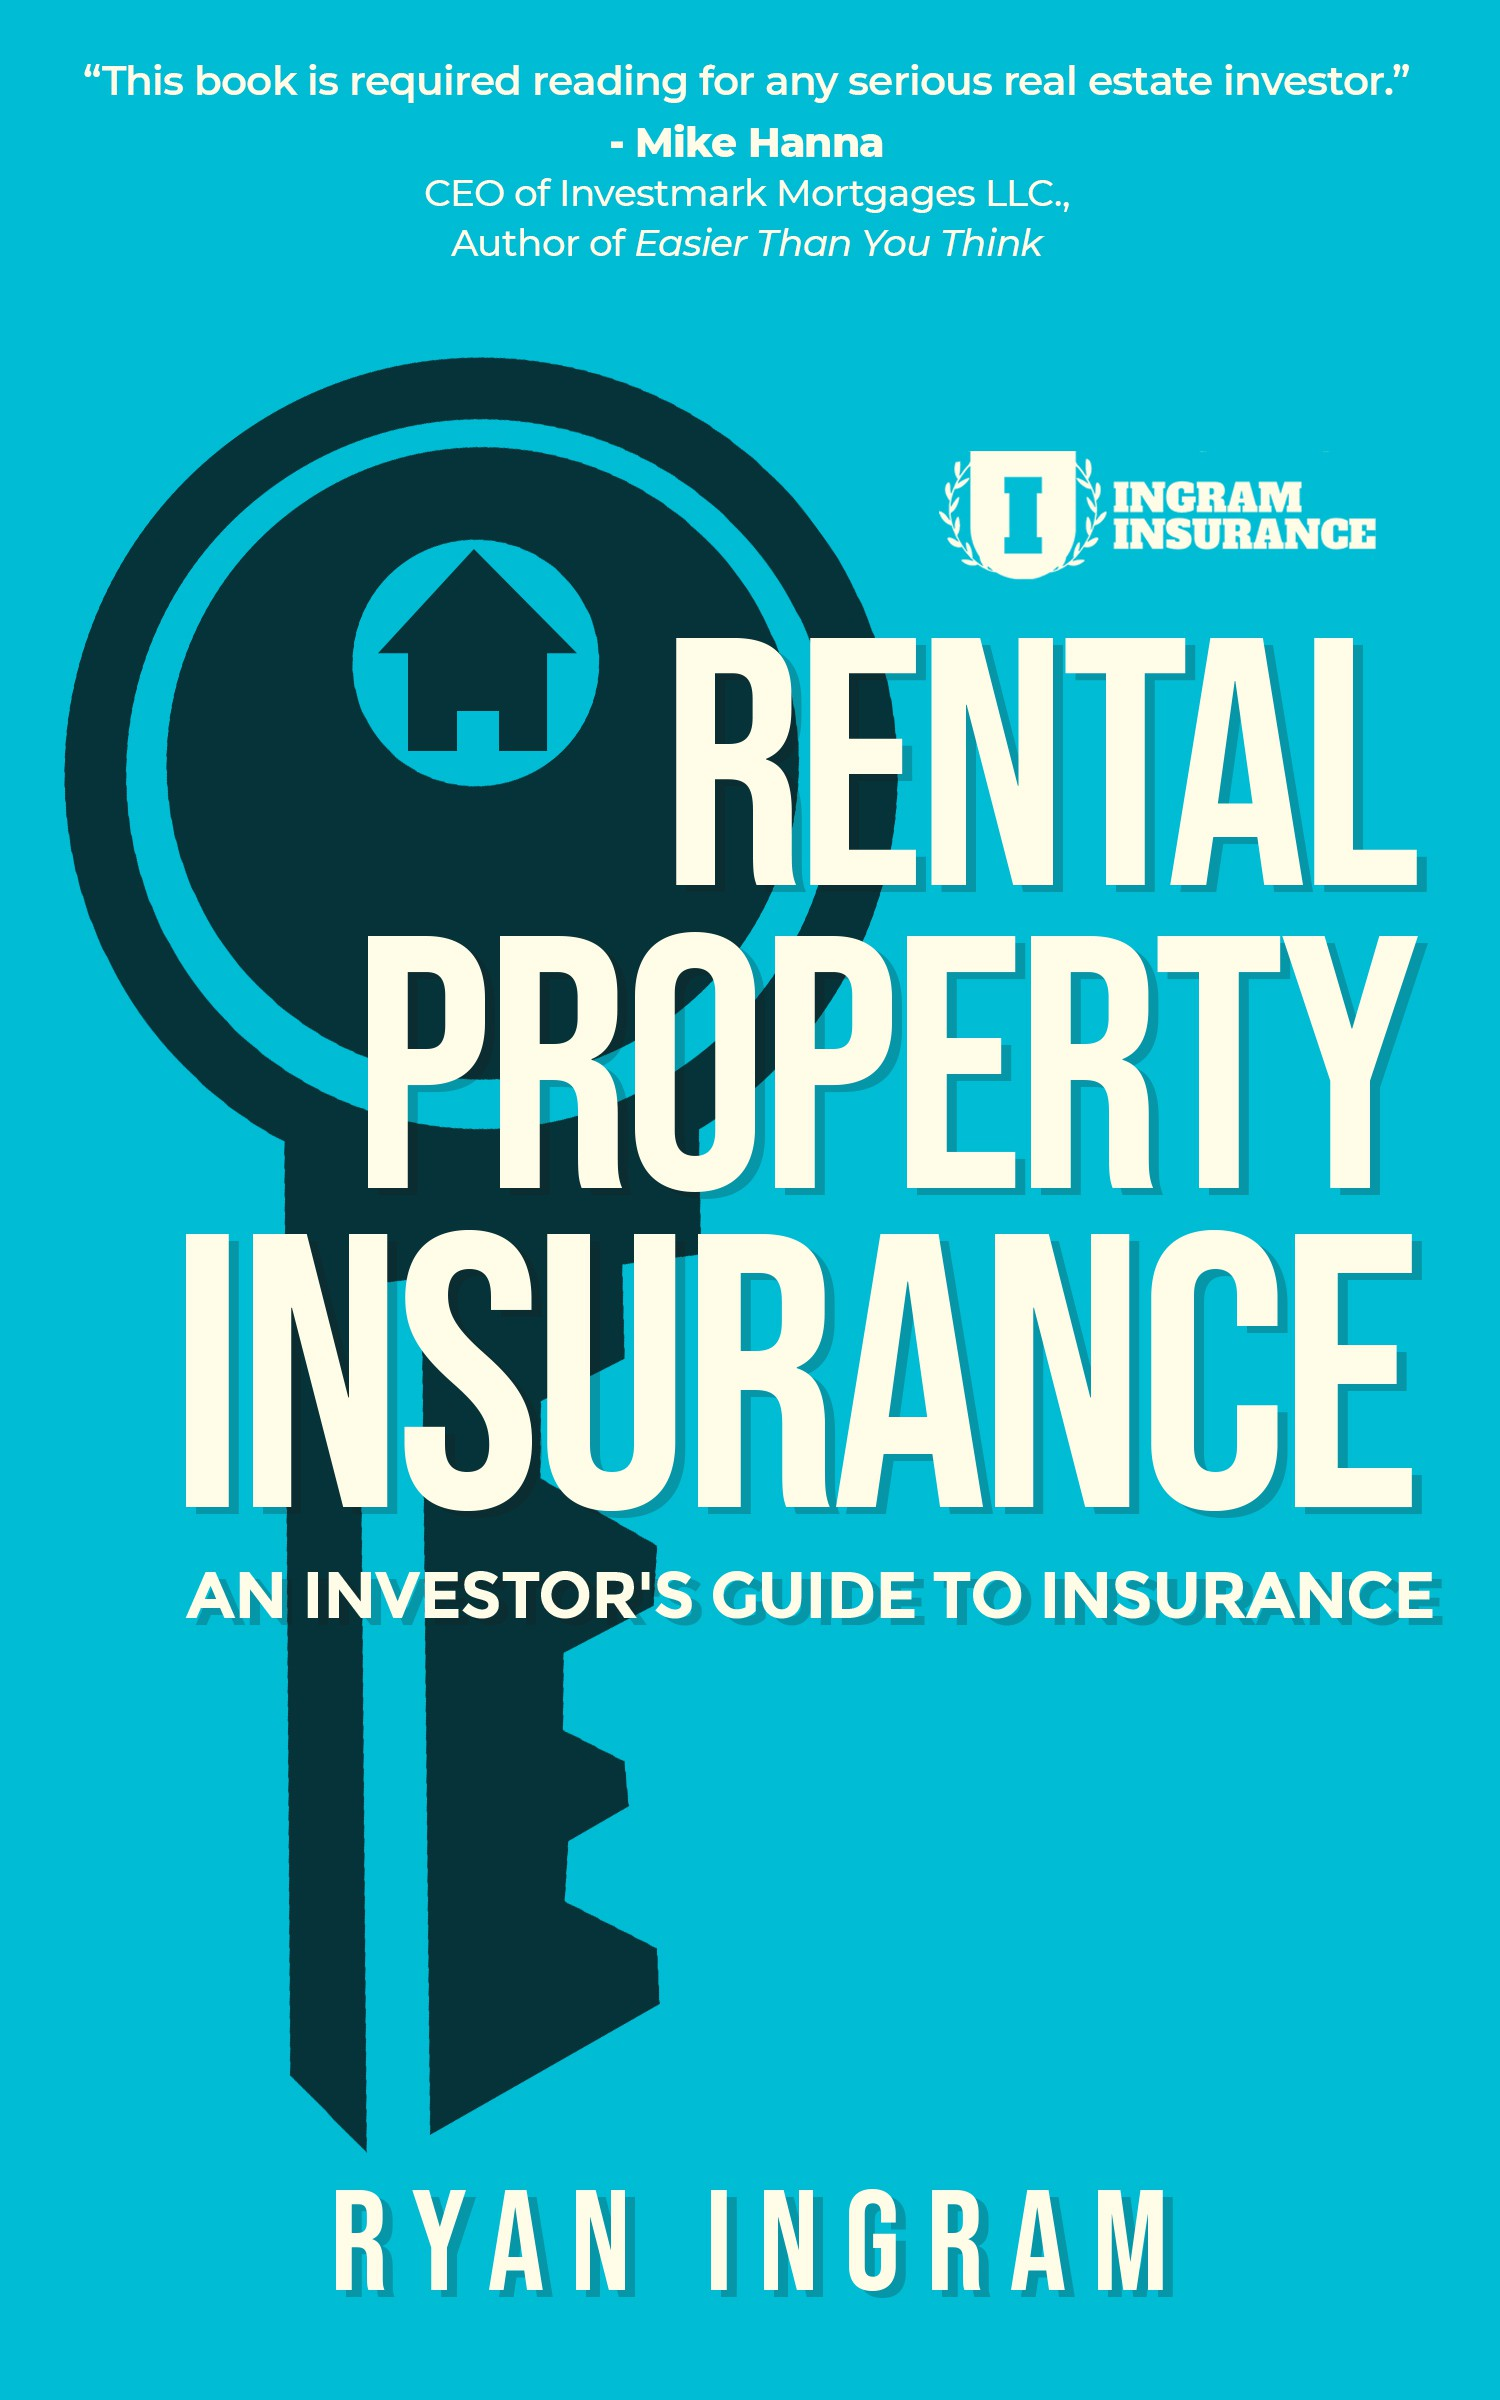 """Book Cover for the title """"Insurance for Real Estate Investors"""""""